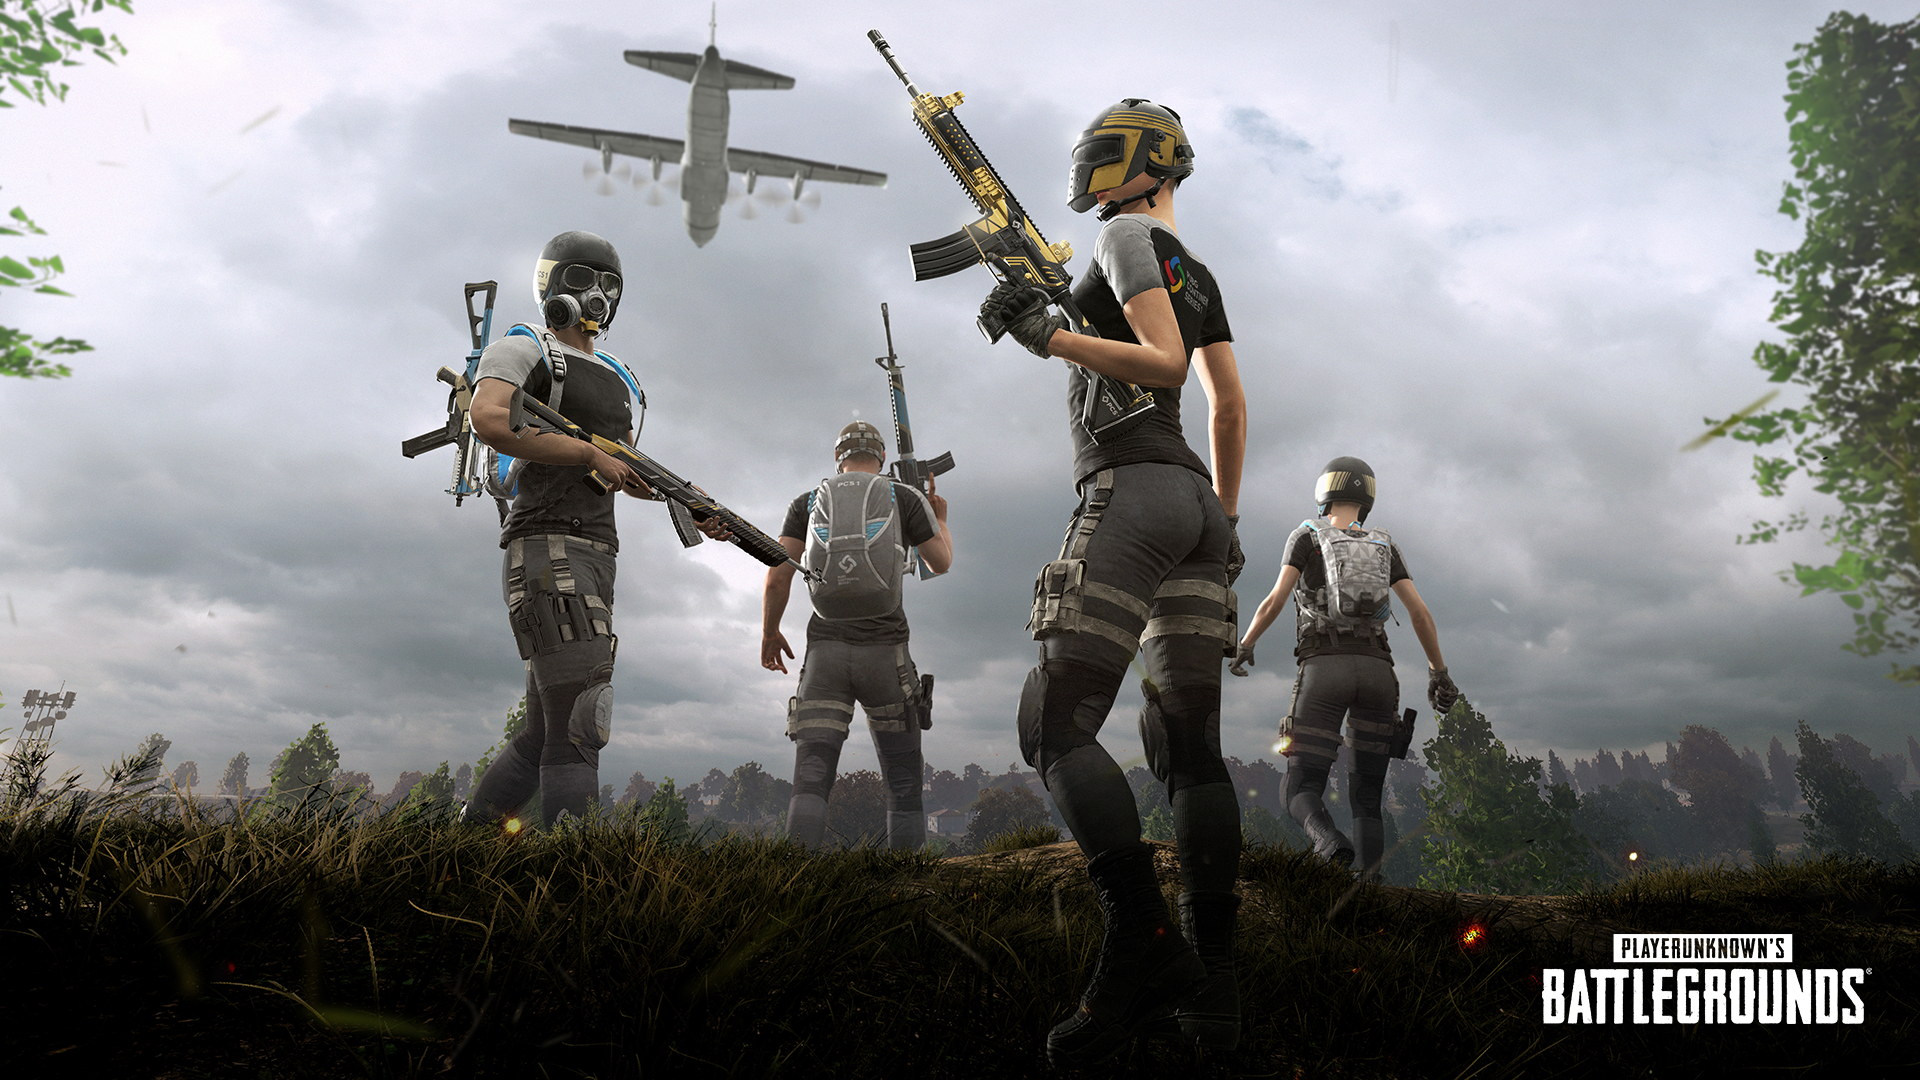 Pubg Mobile Season 7 Wallpaper Hd Games 4k Wallpapers Images Photos And Background